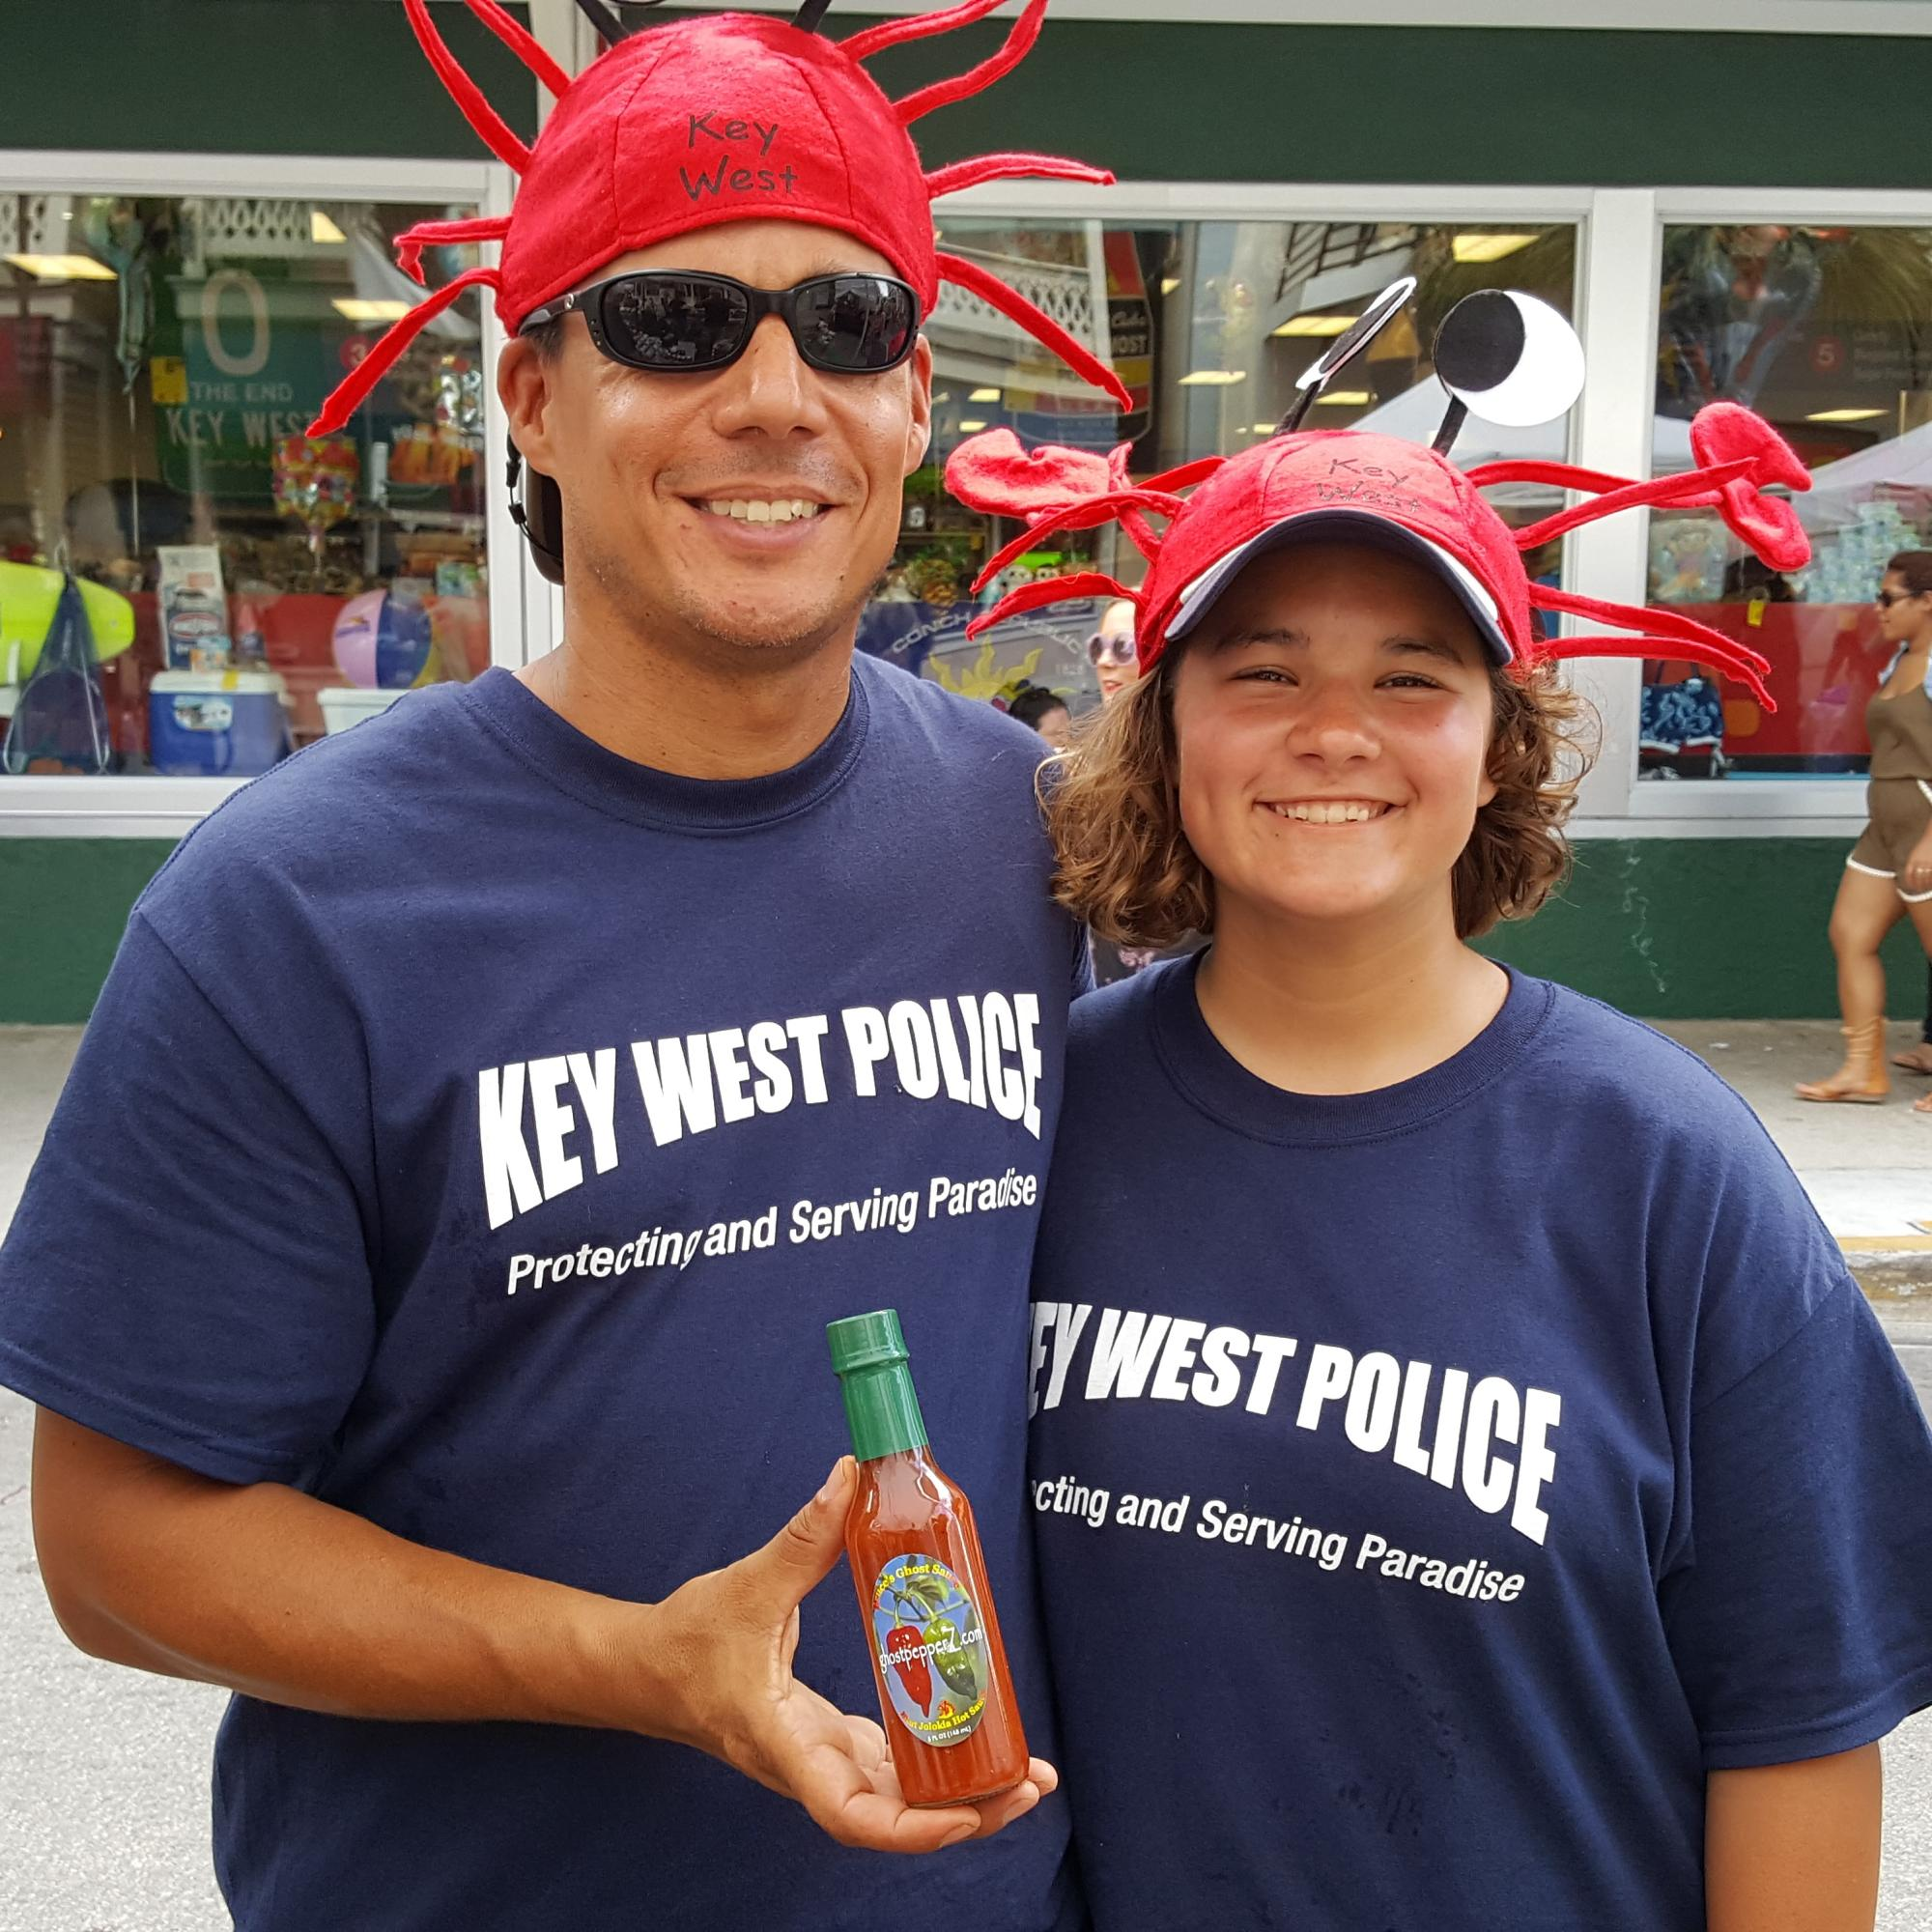 Lobsterfest Key West